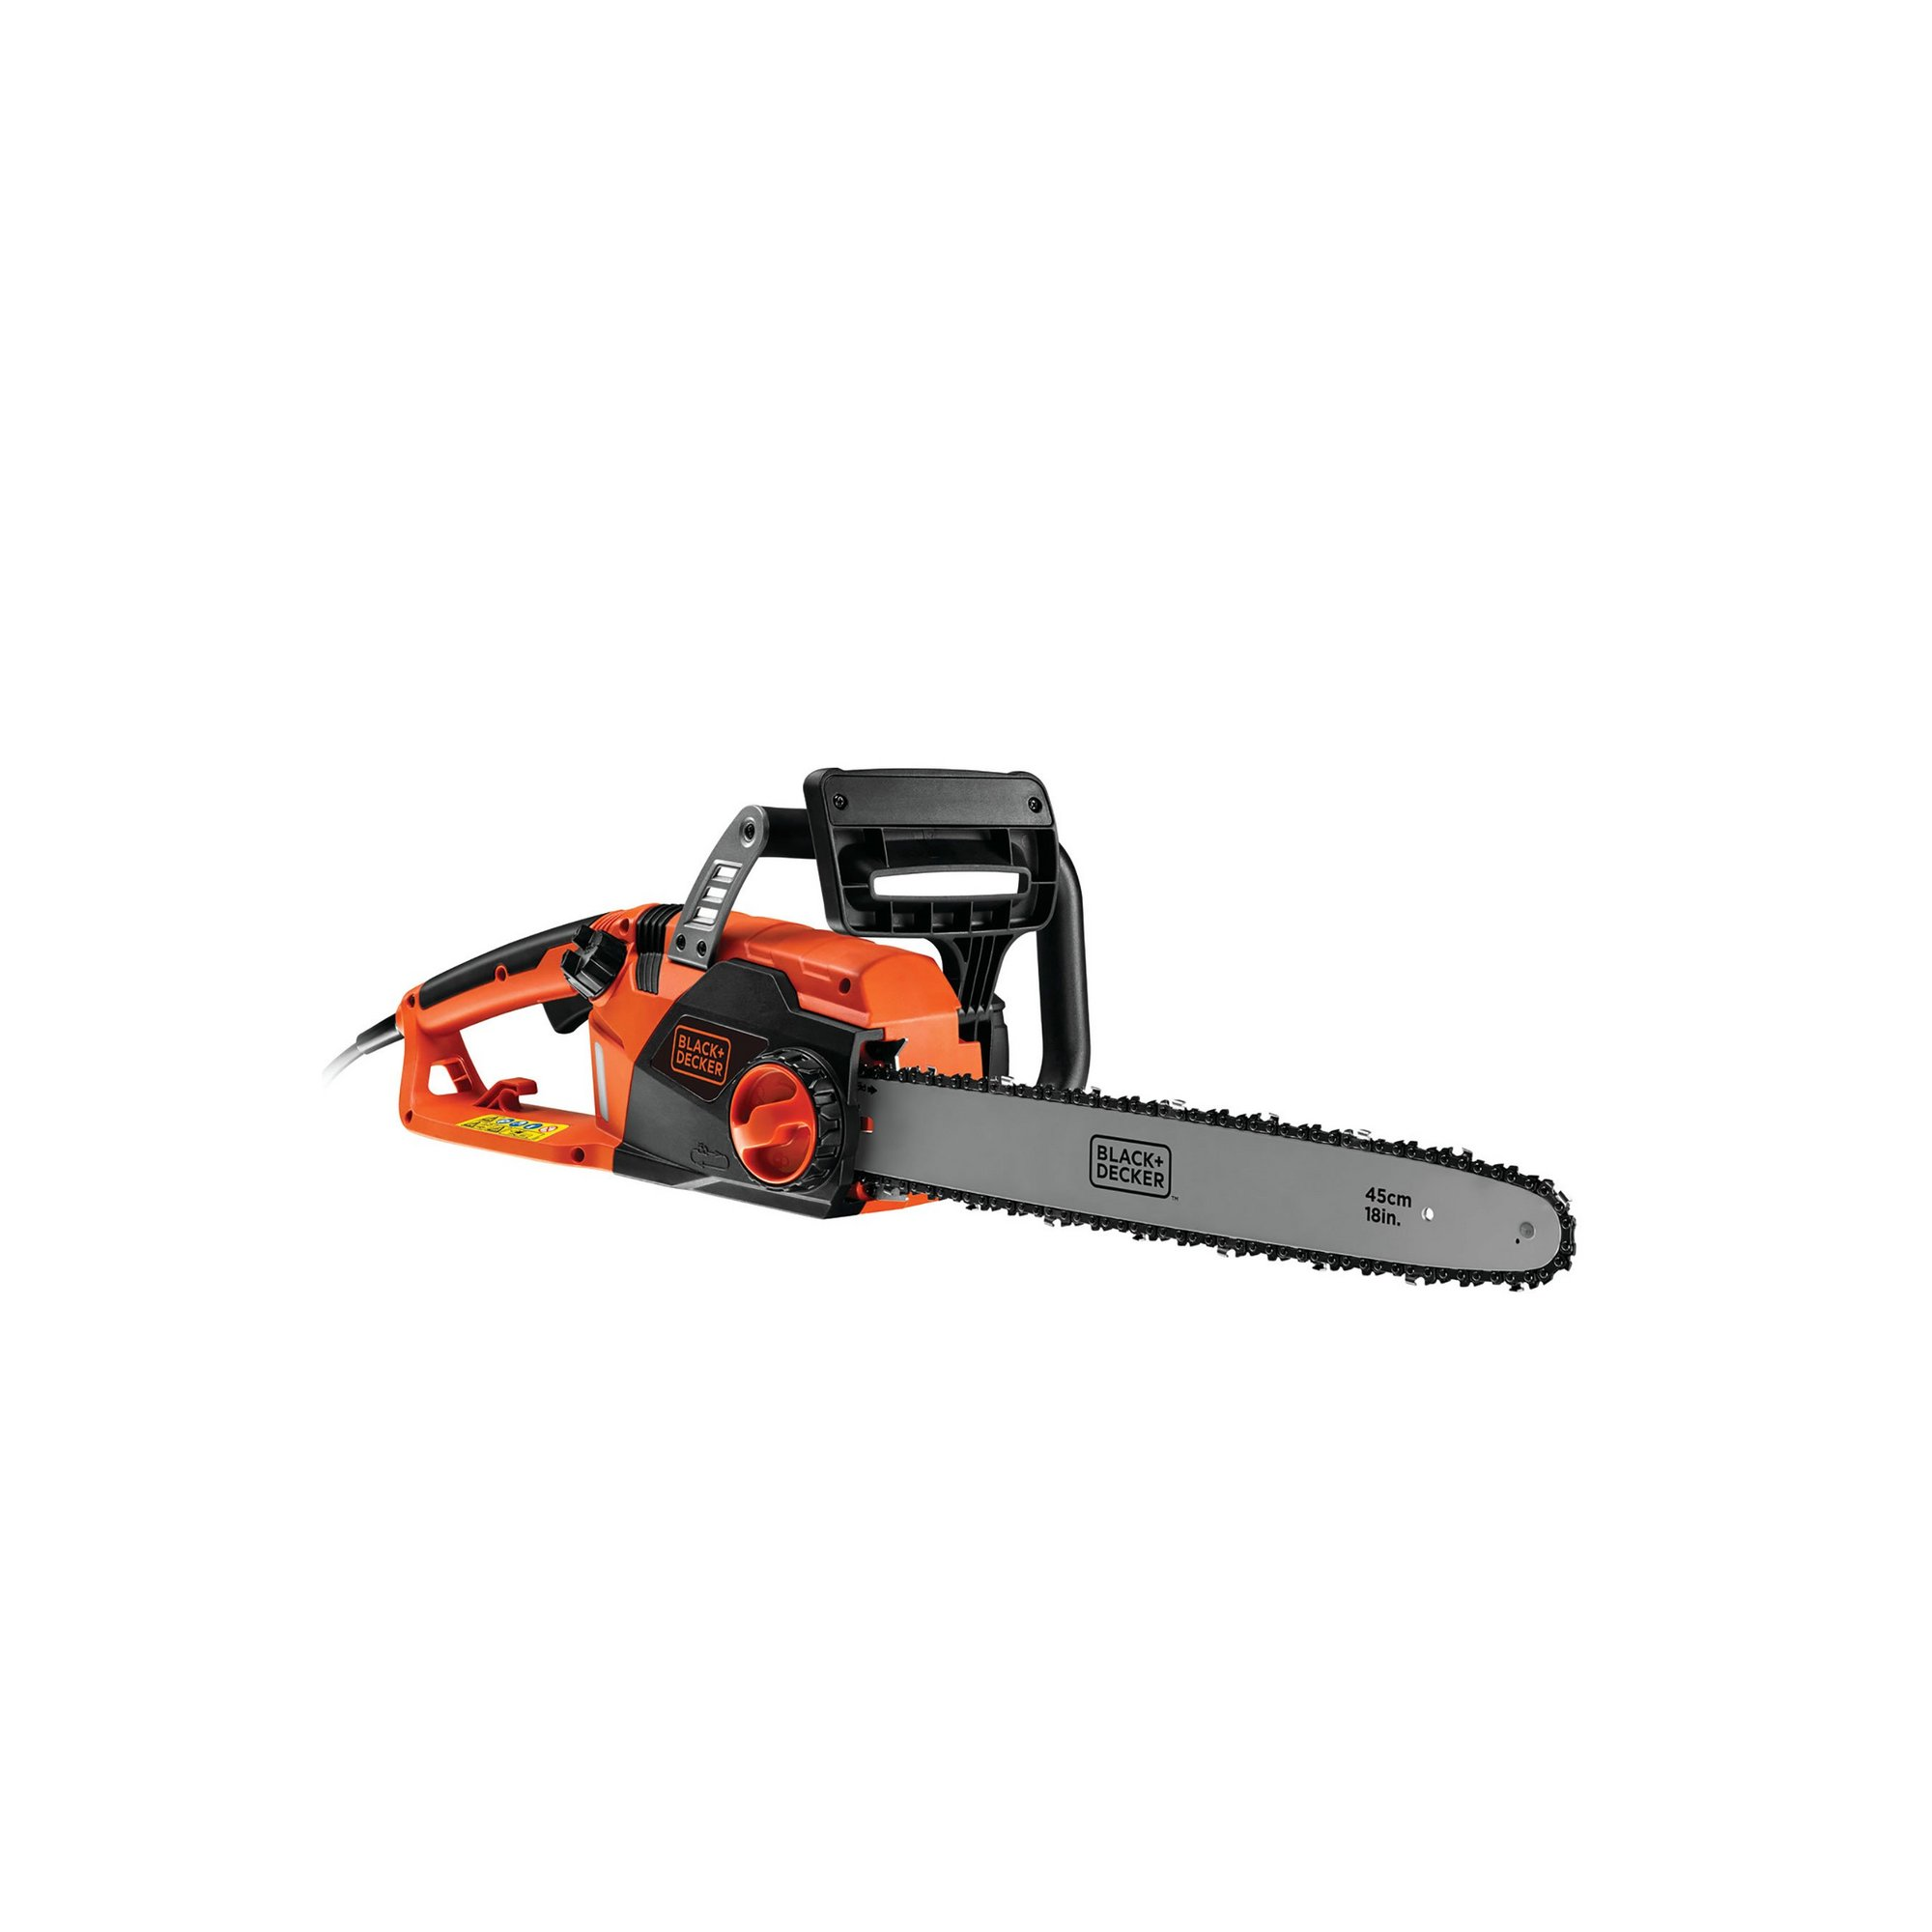 Image of 2200w Corded Chainsaw with 45cm Cutting Capacity